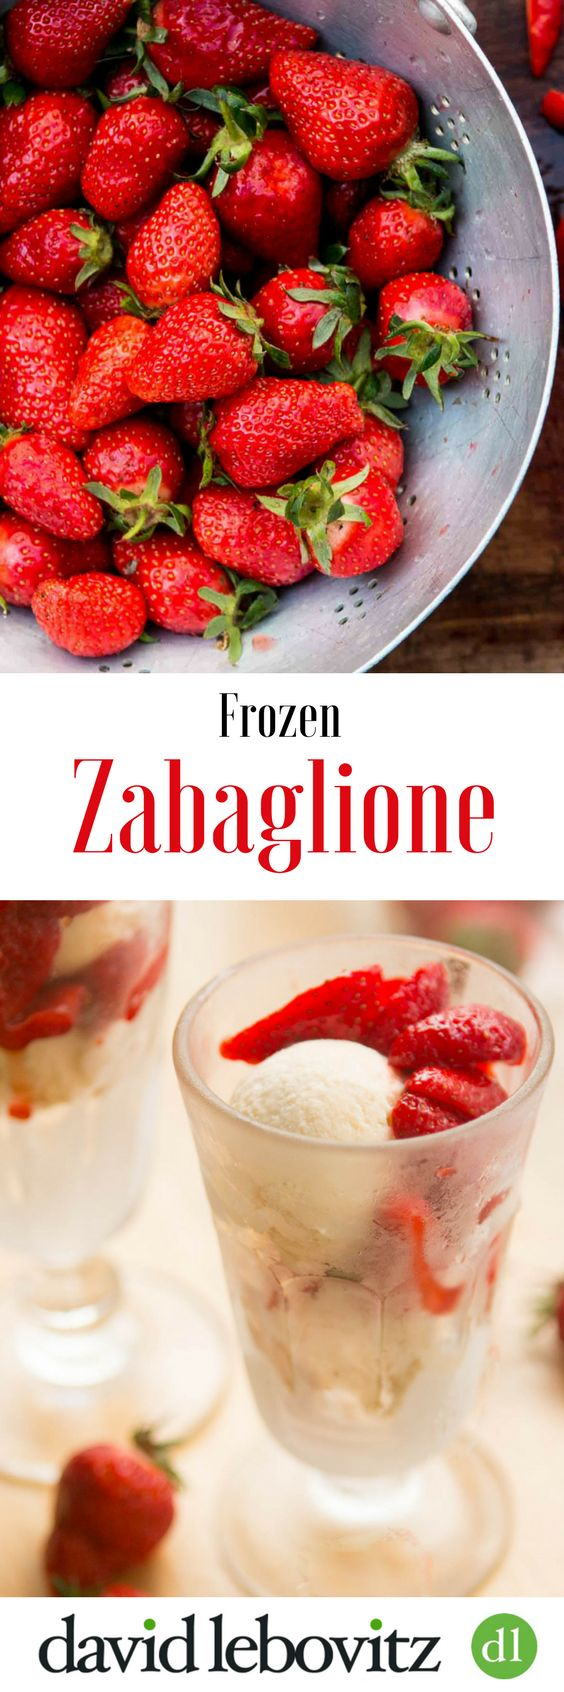 Frozen zabaglione - perfect with fresh fruit and berries!